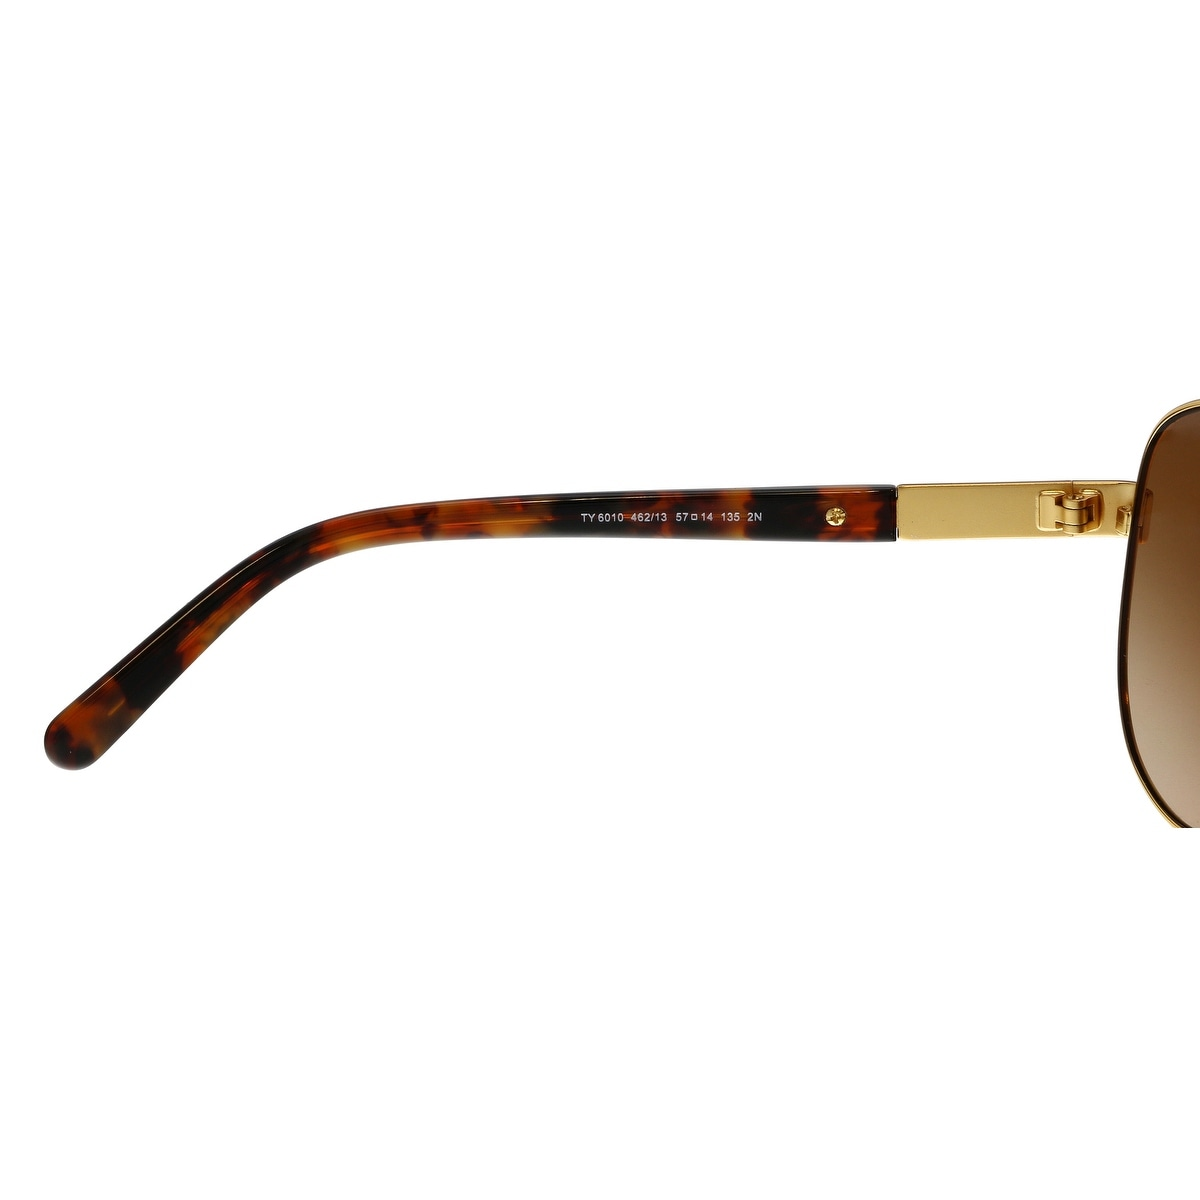 a40eff3a9825 Shop Tory Burch TY6010 462/13 Gold Tortoise Aviator Sunglasses - no size -  Free Shipping Today - Overstock - 24080337